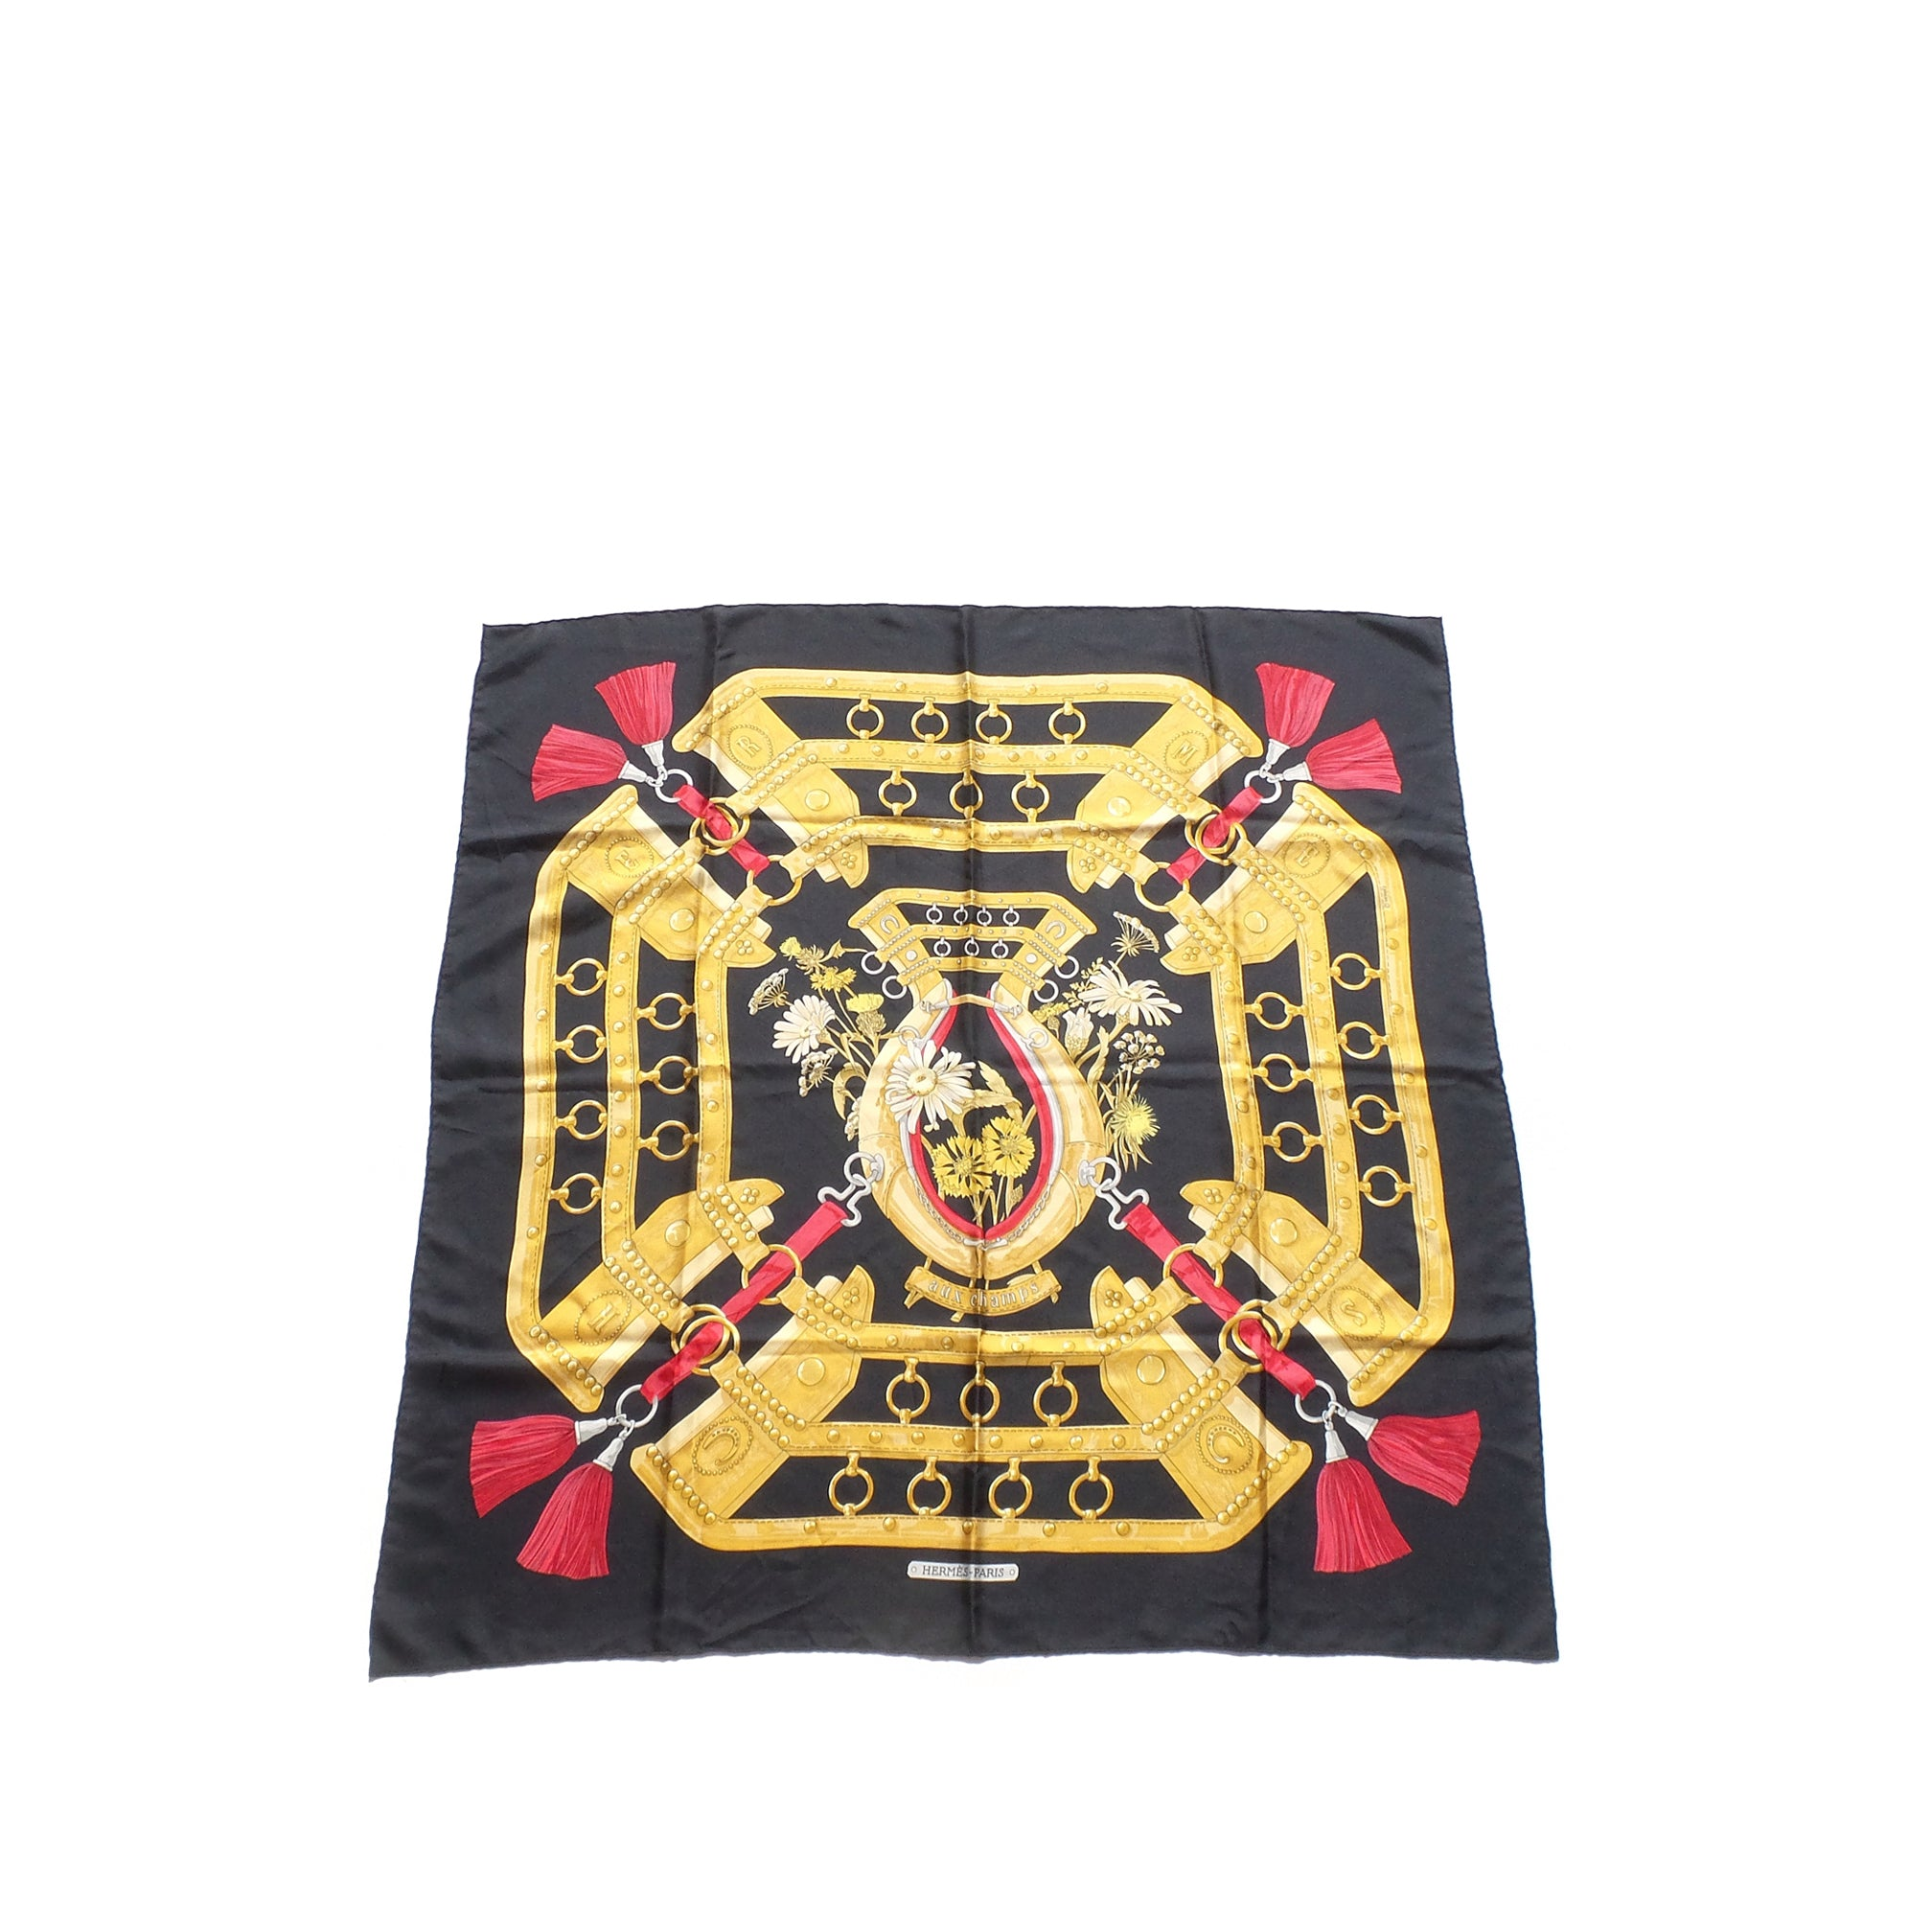 HERMES Vintage Black Gold Red Gray Aux Champs Silk Twill Scarf 90cm Caty Latham